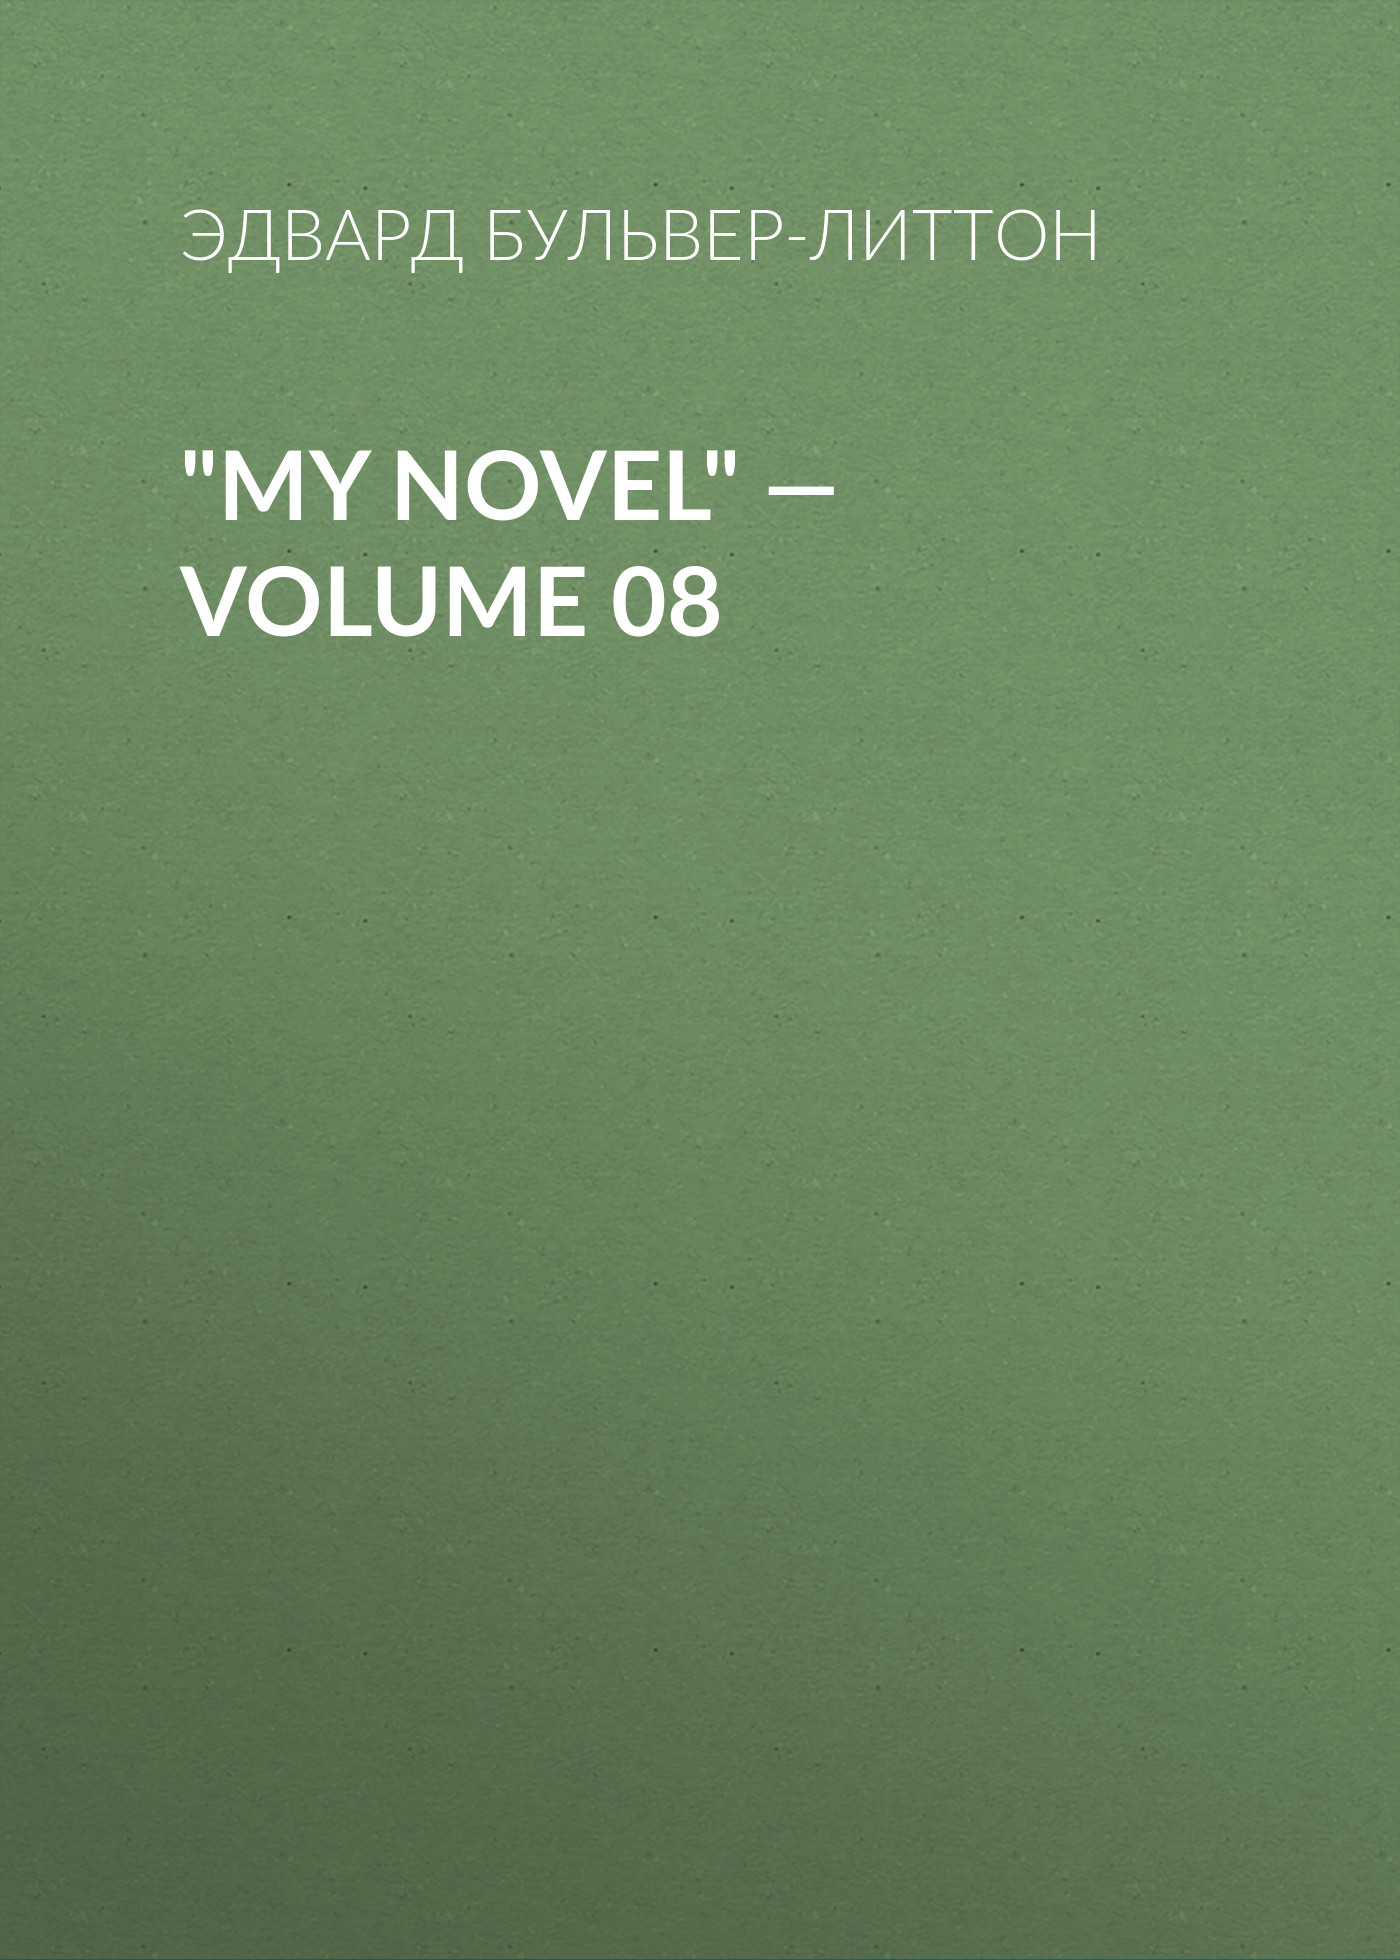 Эдвард Бульвер-Литтон My Novel — Volume 08 эдвард бульвер литтон my novel volume 05